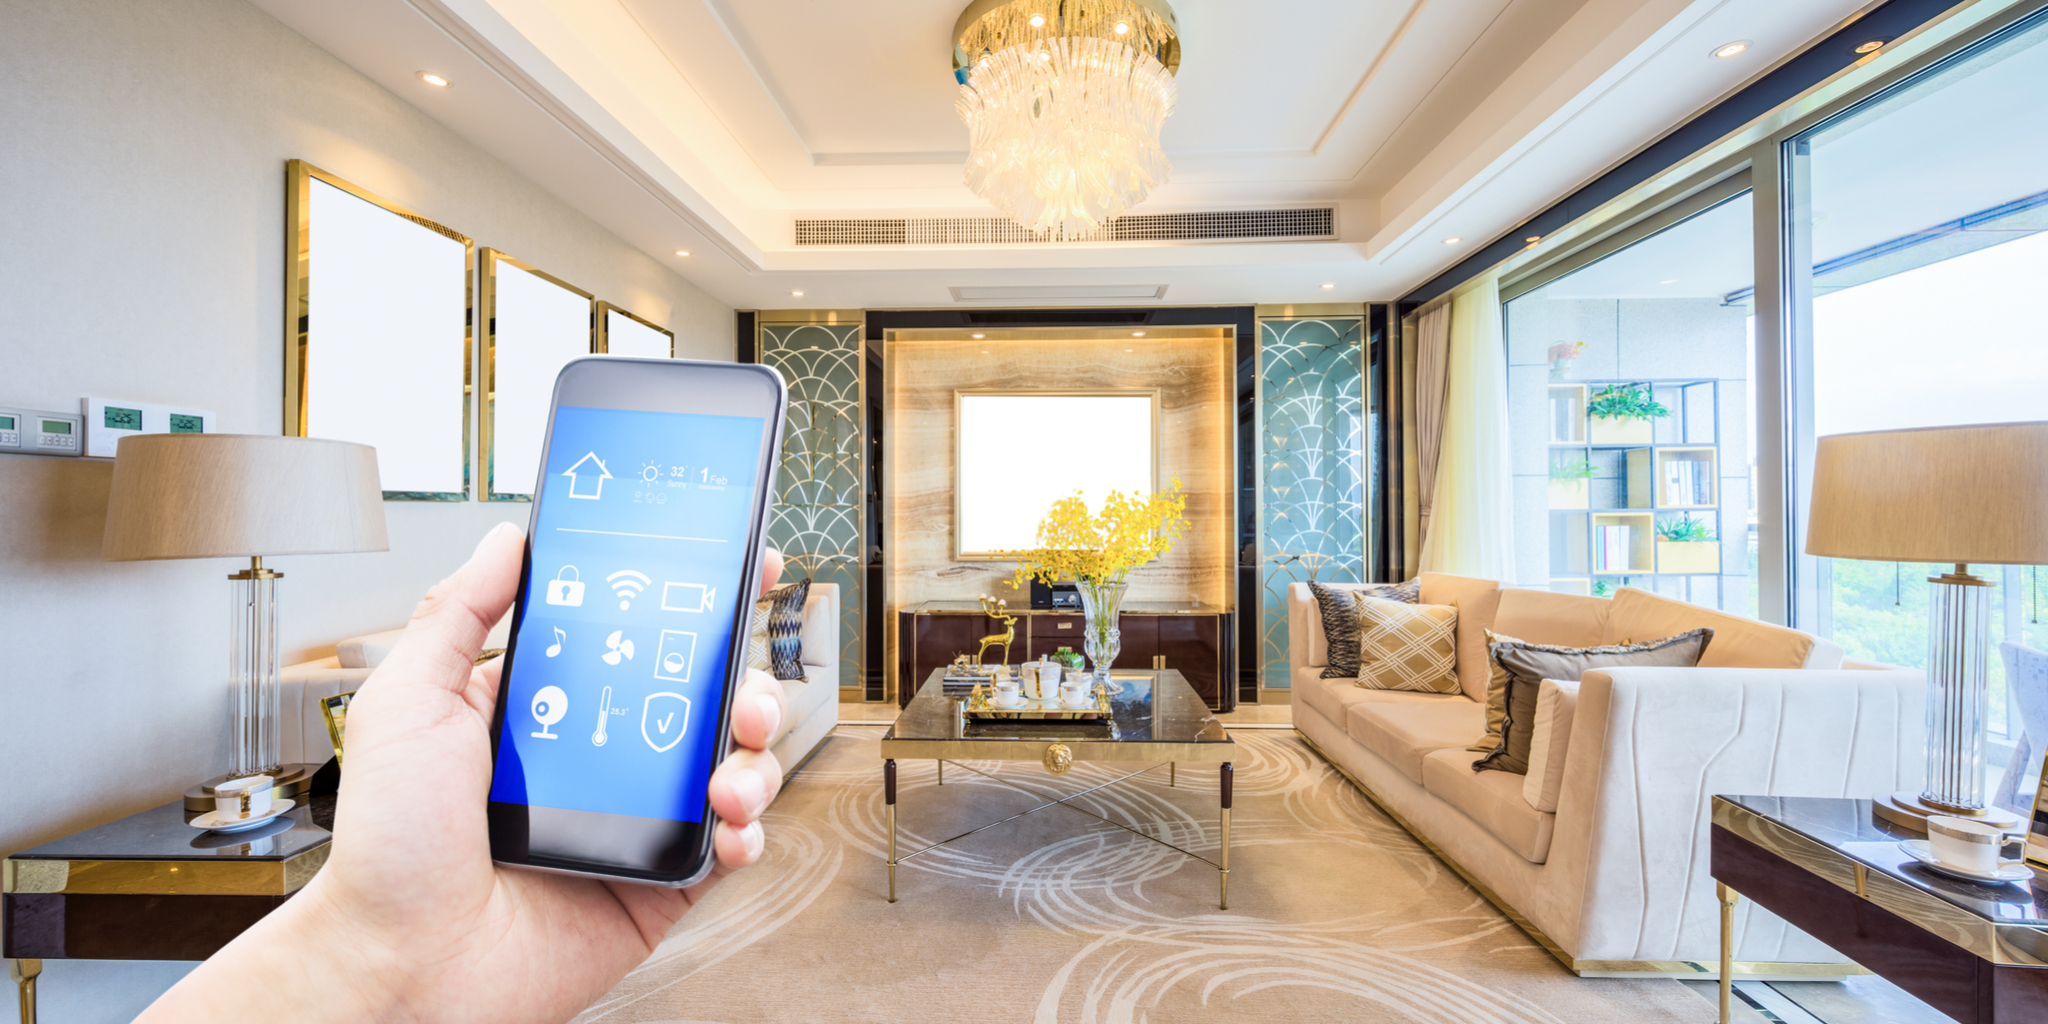 Best Smart Home Devices 2020 10 Best Smart Home Technologies